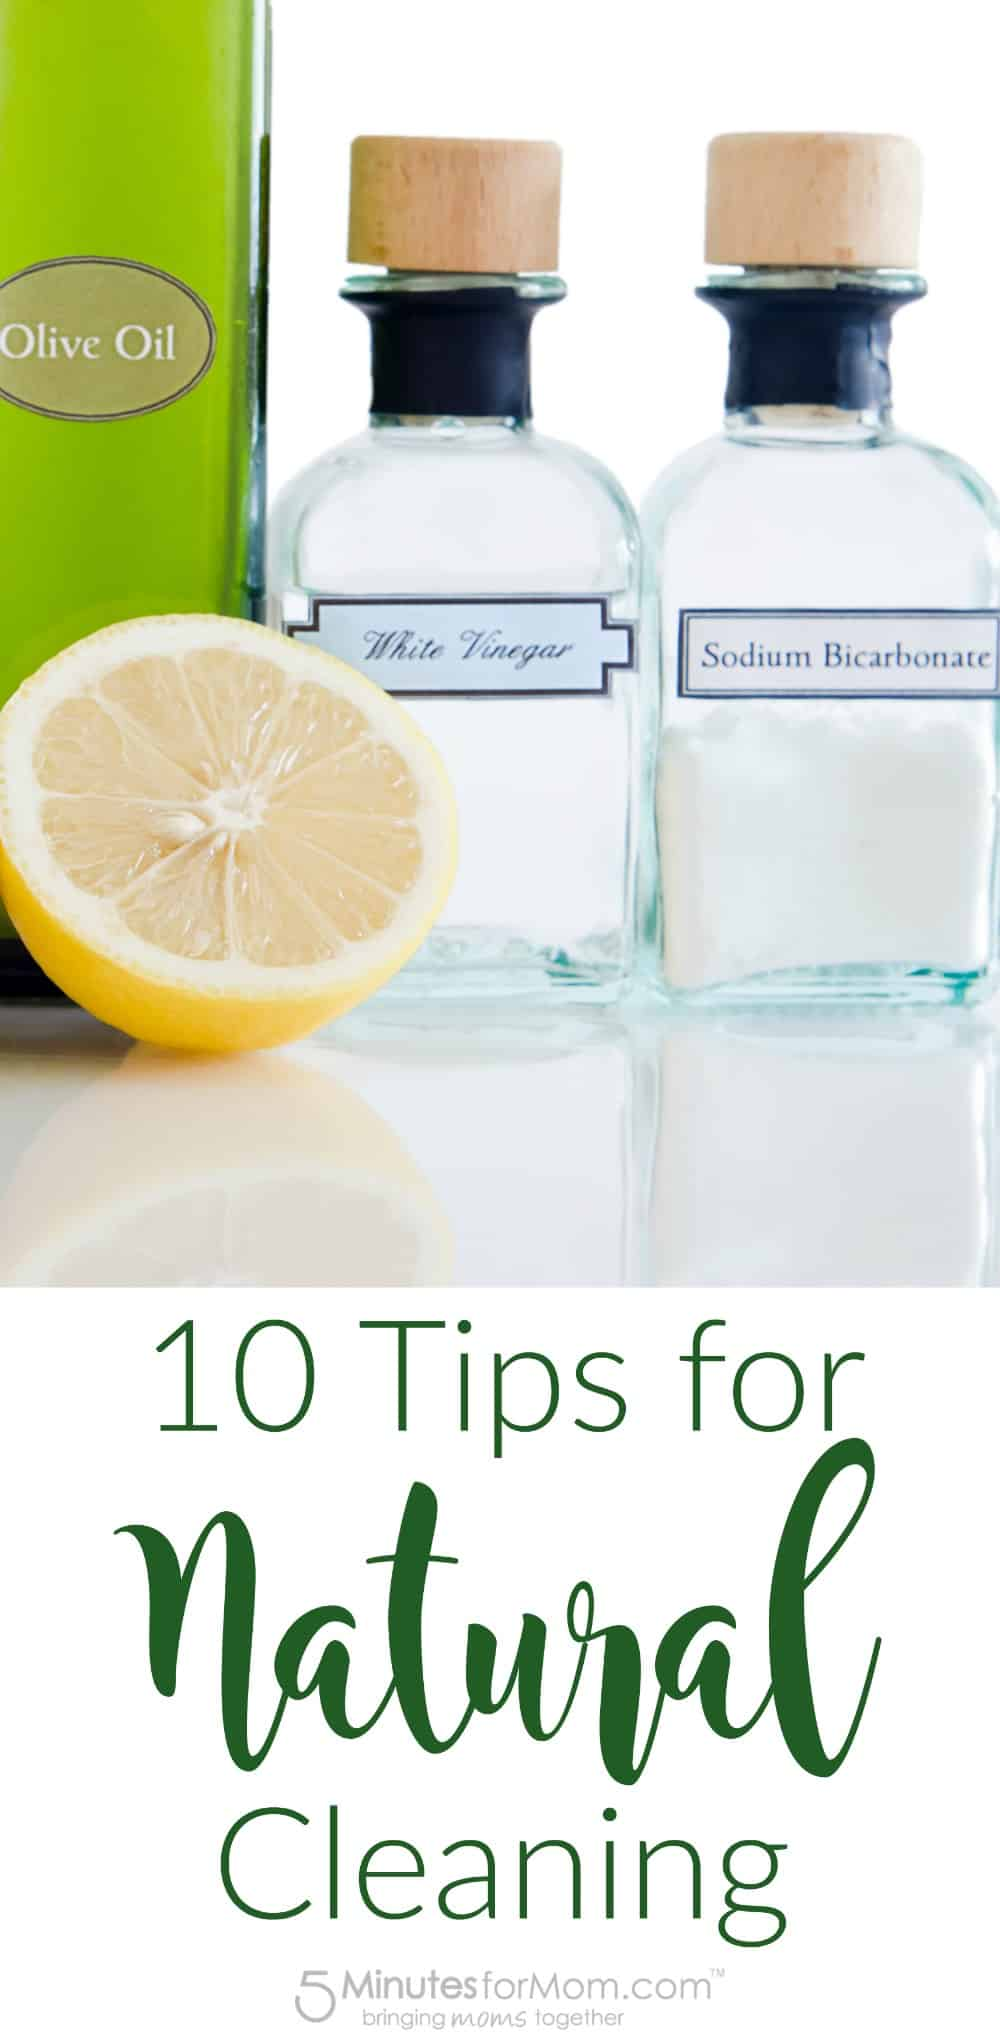 10 Tips for Natural Cleaning